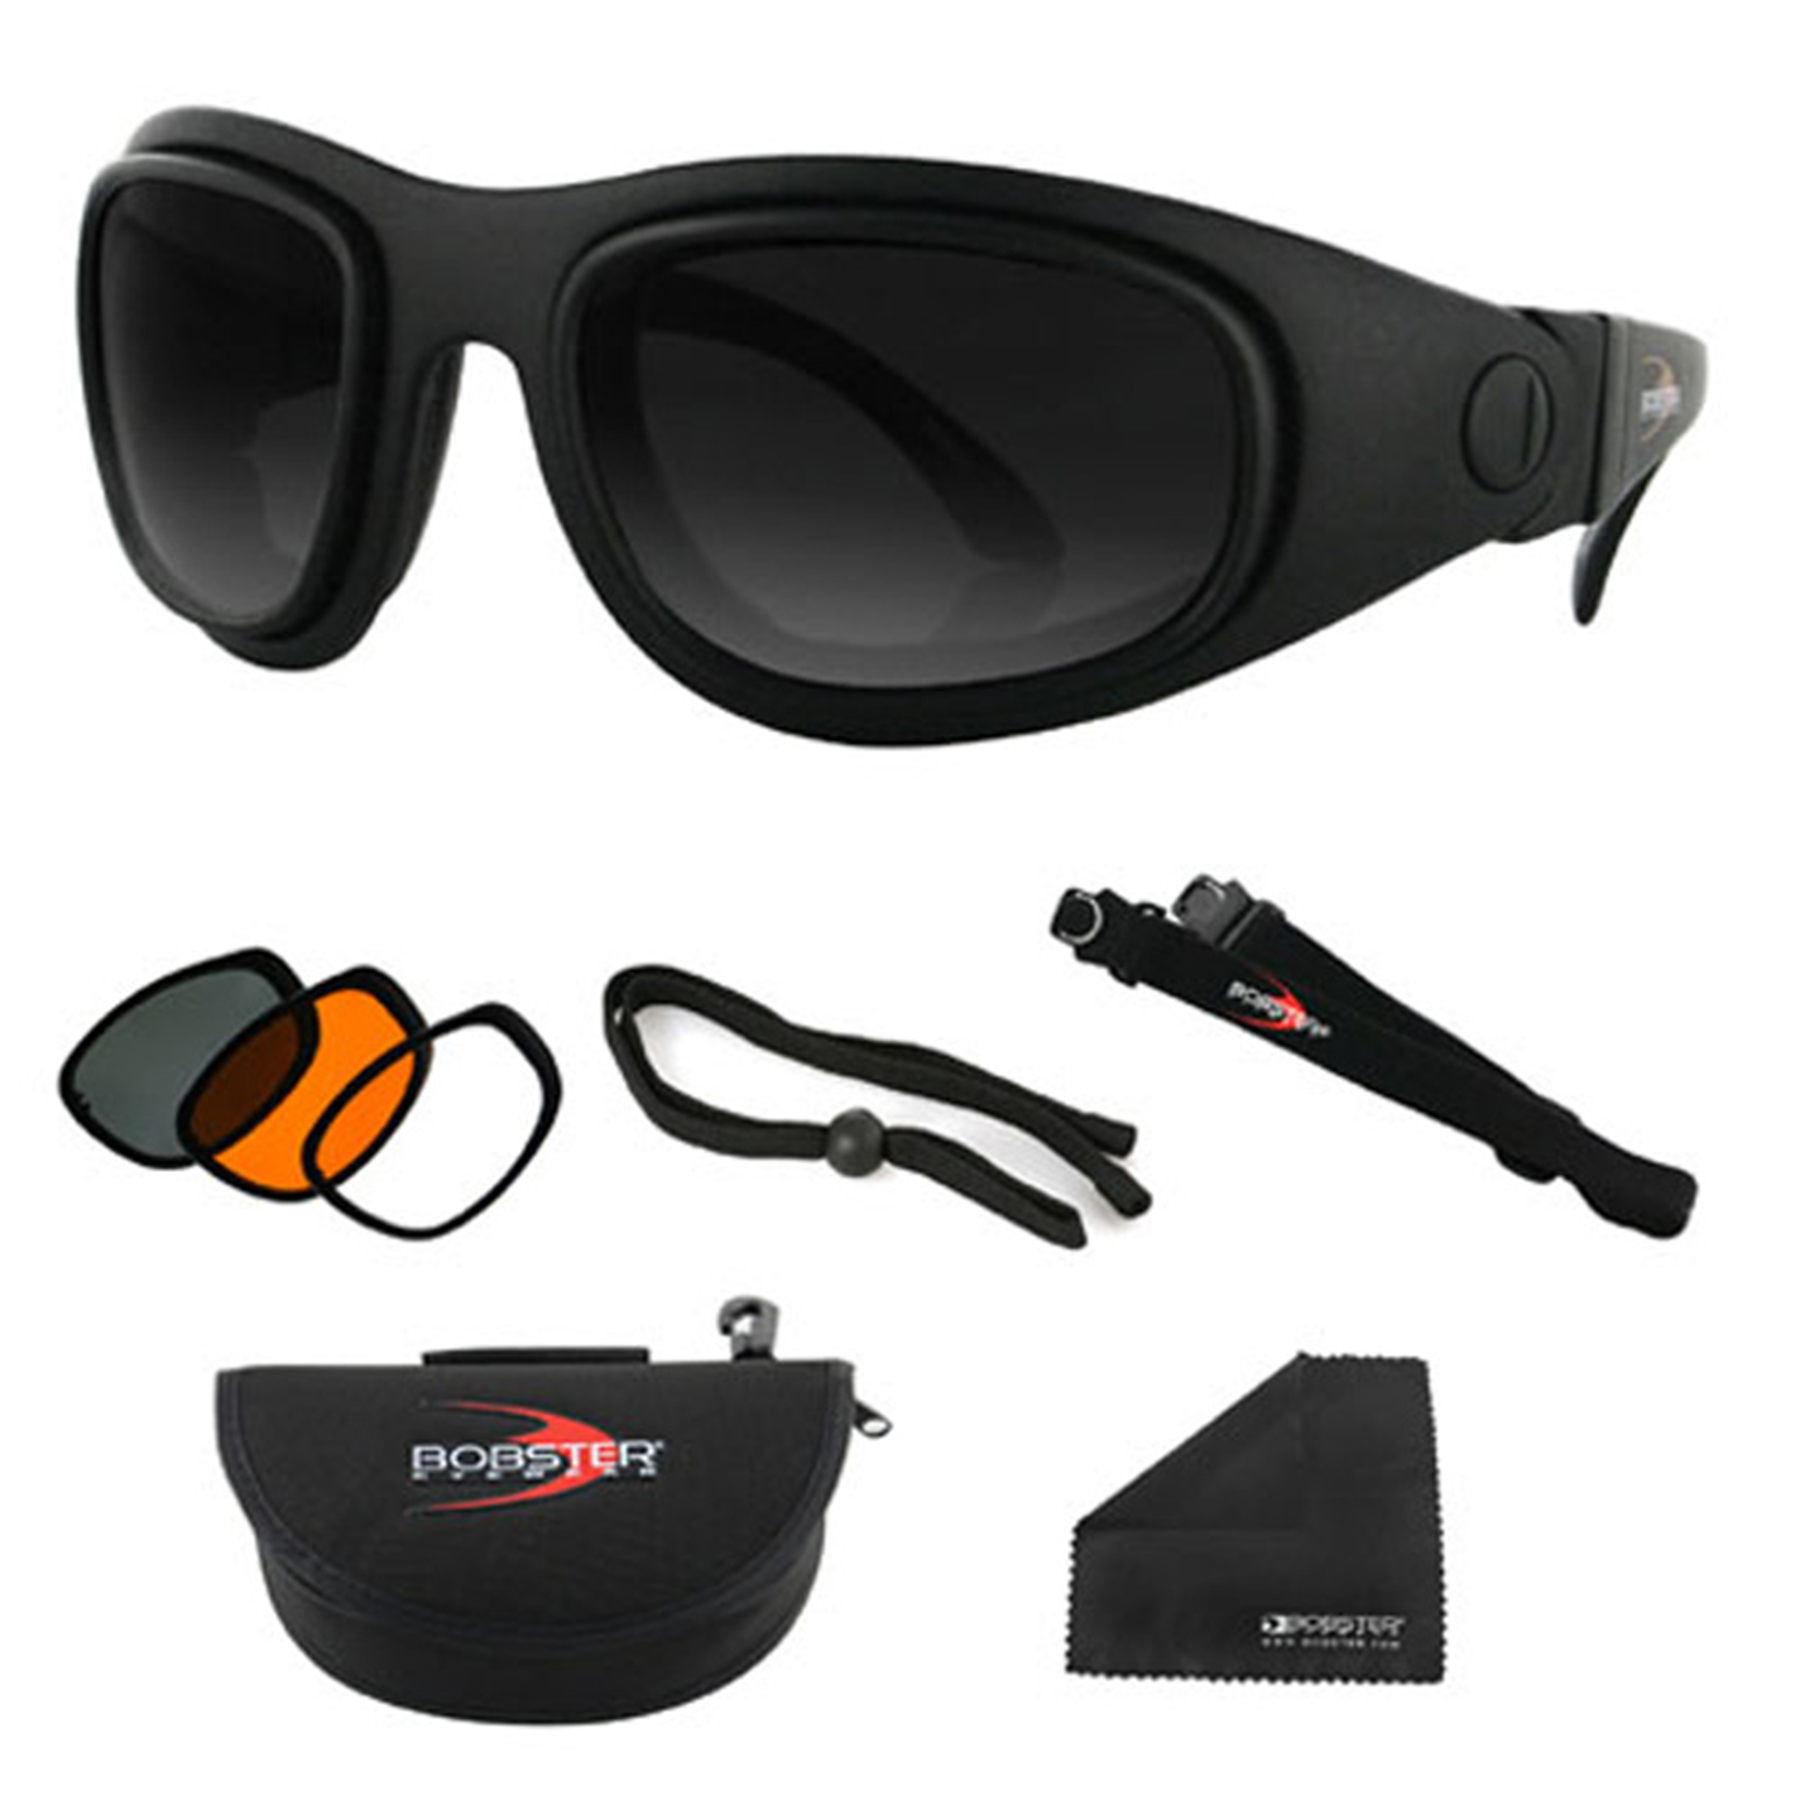 Bobster Sport & Street 2 Convertible Sunglass, Black Frame, 3 Lenses